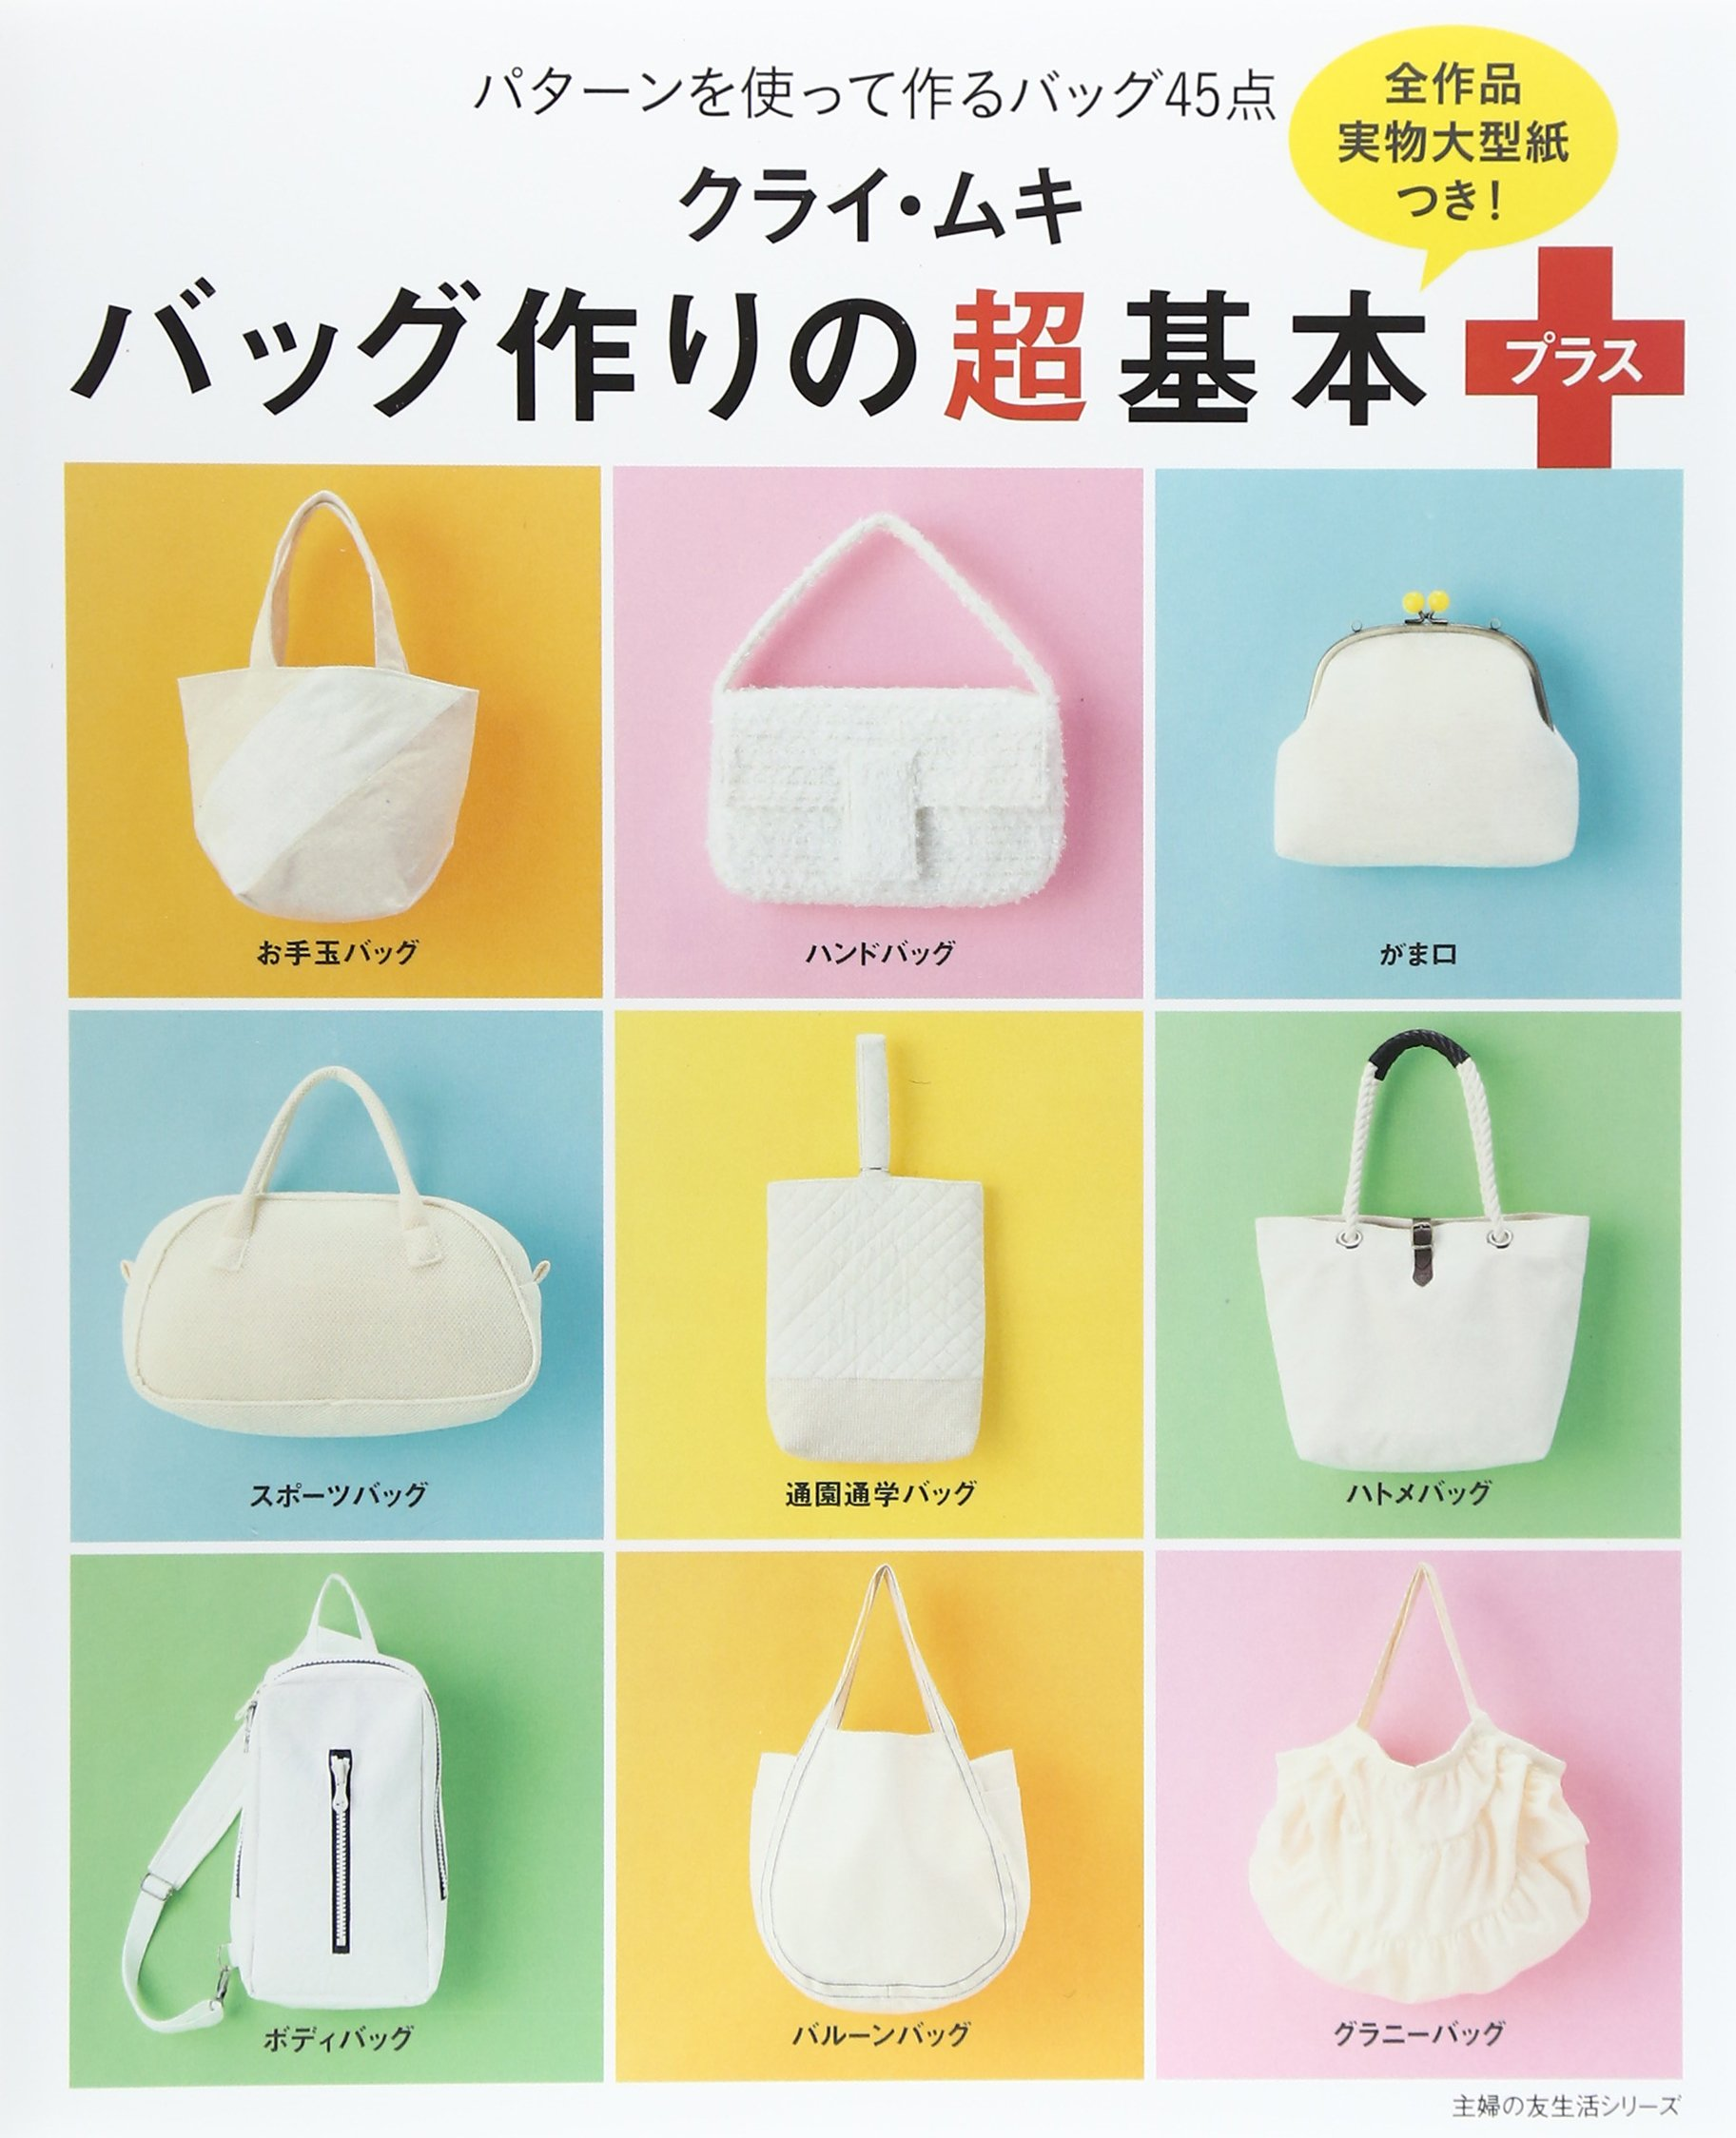 Cry and inorganic ultra-basic of making bag